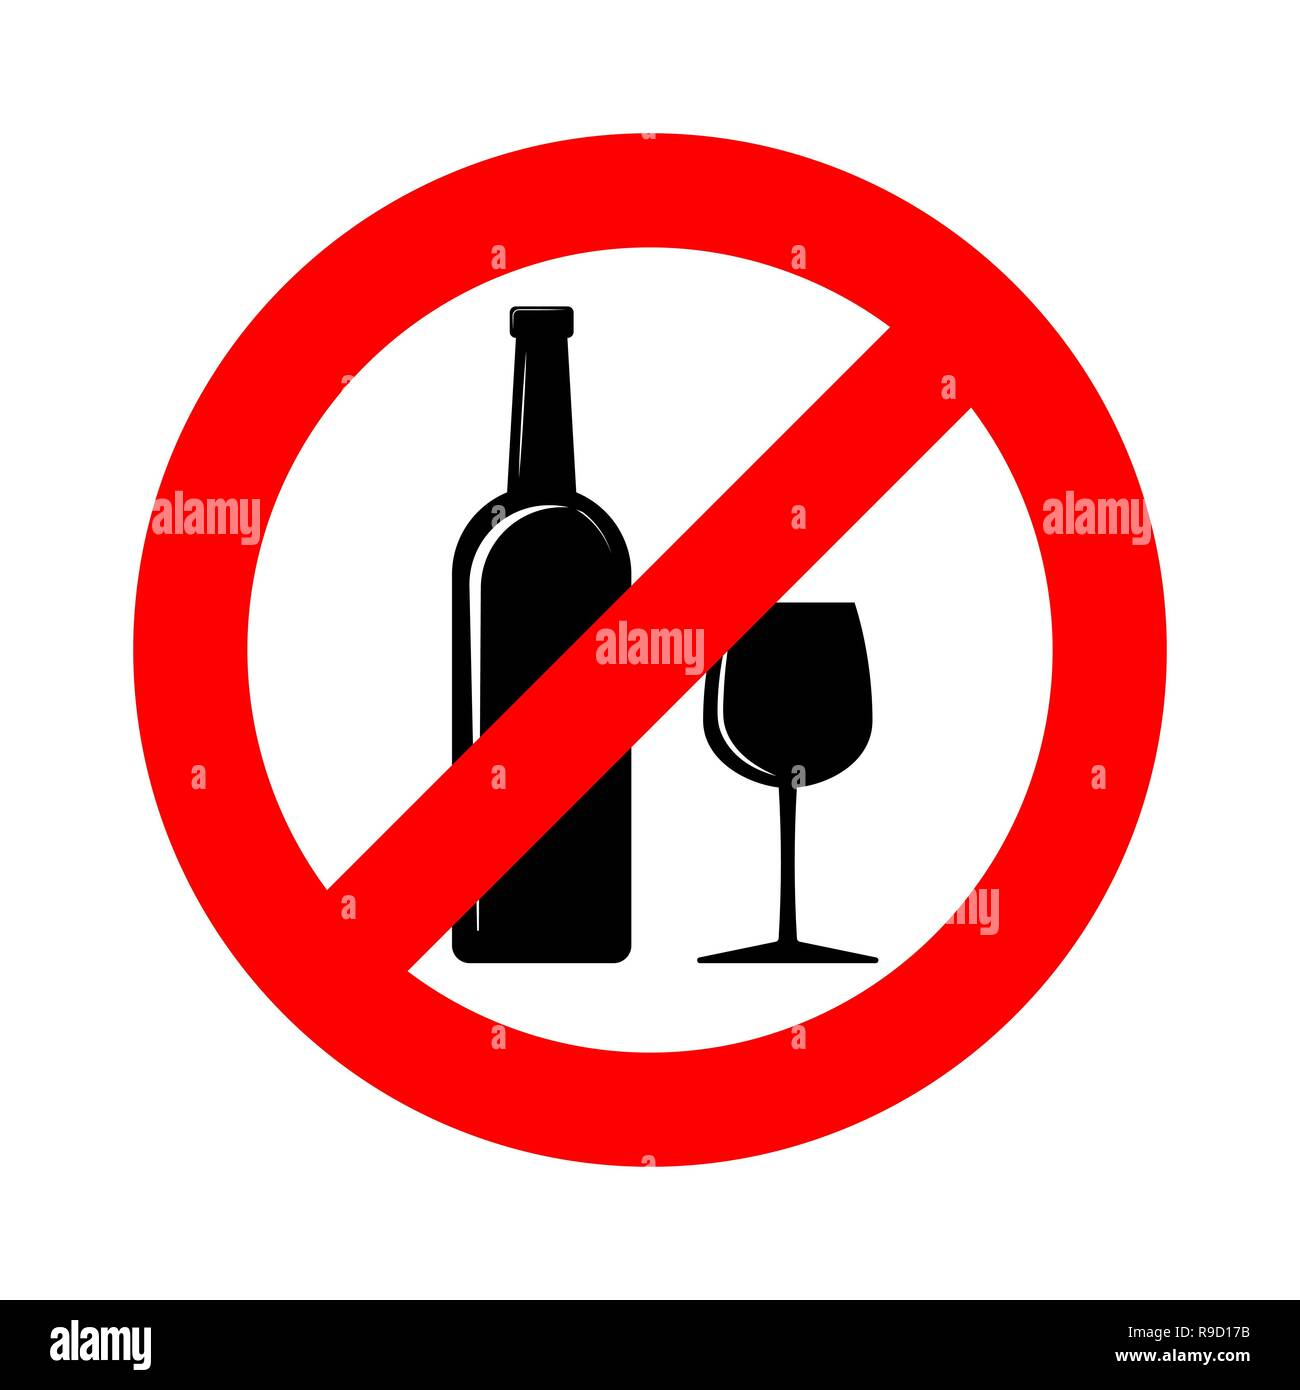 No alcohol sign. Vector illustration. Prohibition sign for alcohol. No alcohol drink sign Stock Vector